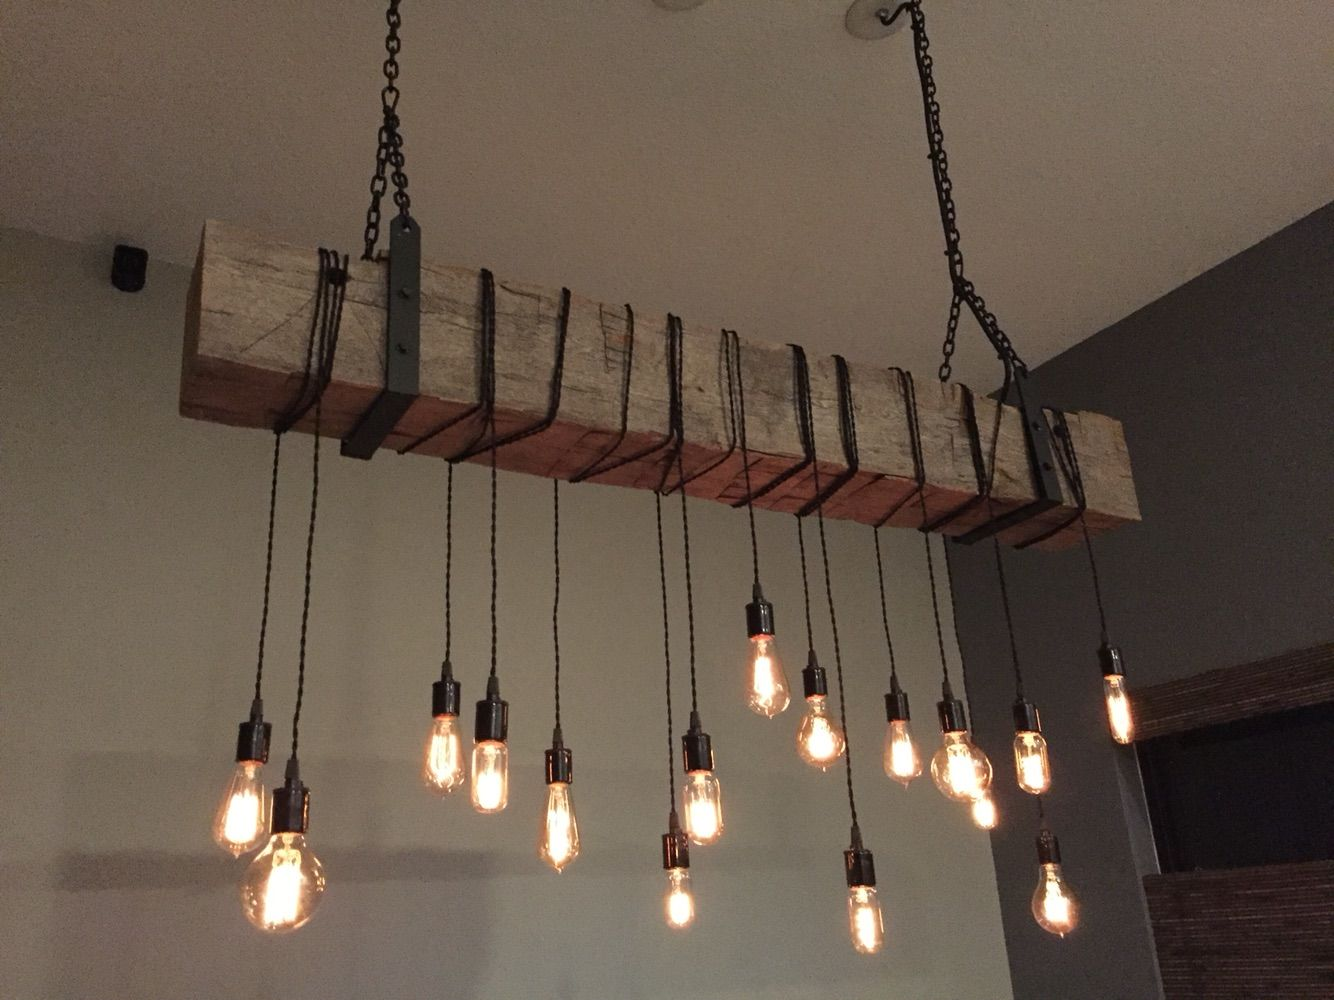 Buy a custom reclaimed barn beam chandelier light fixture modern custom made reclaimed barn beam chandelier light fixture modern industrial rustic restaurant bar arubaitofo Images